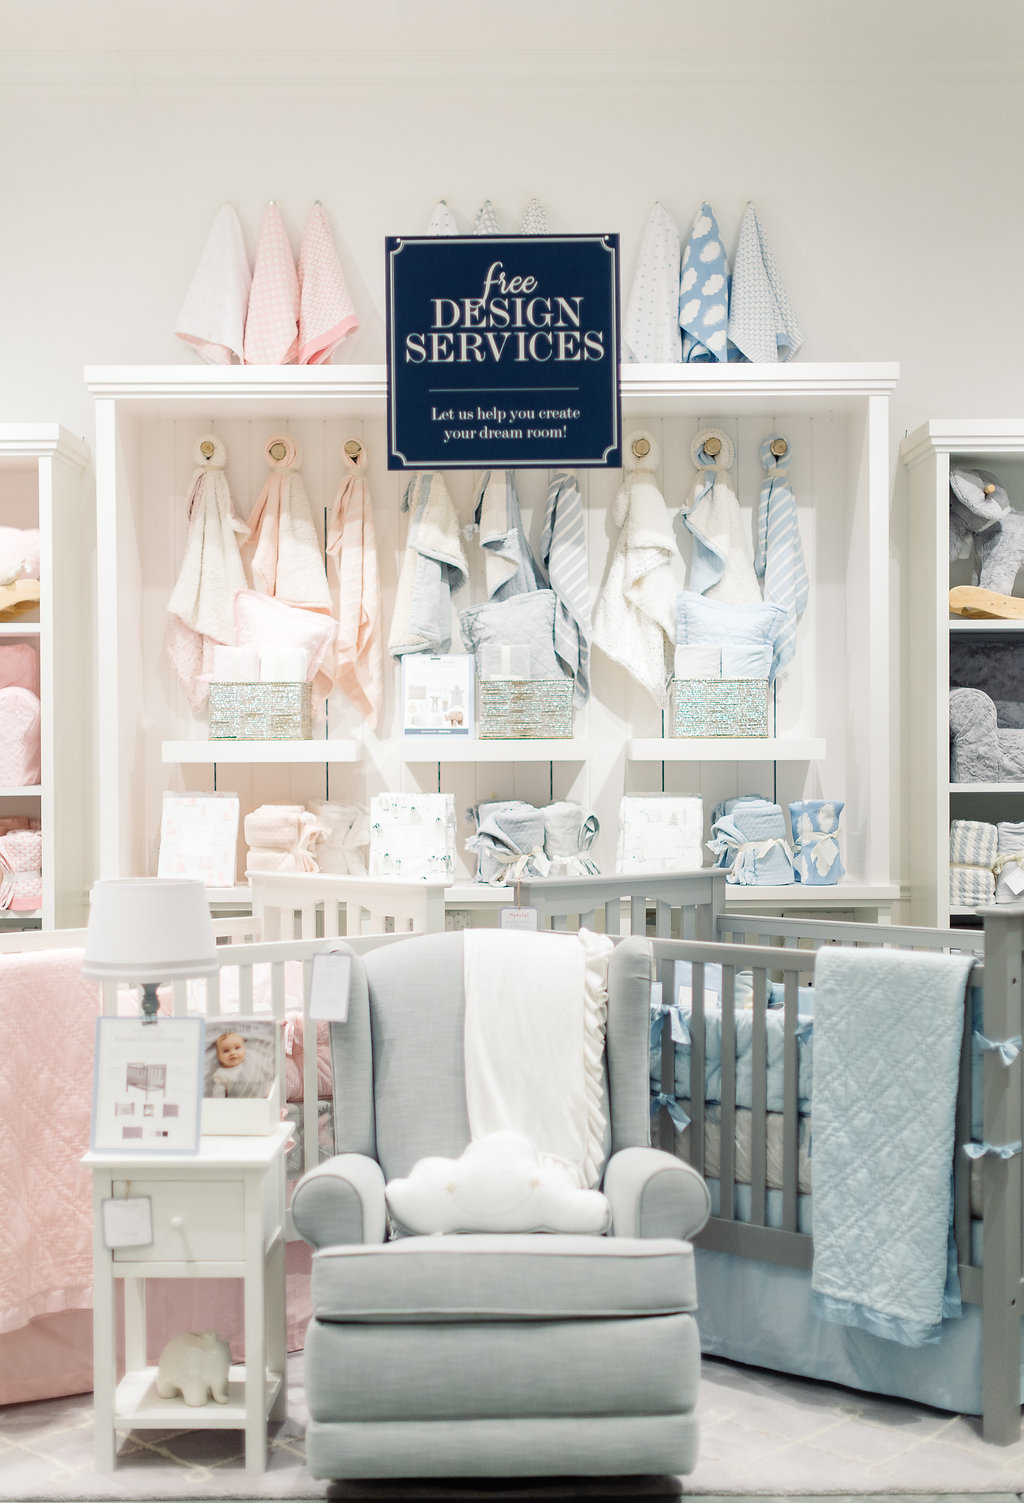 Pottery Barn Kids Design Services